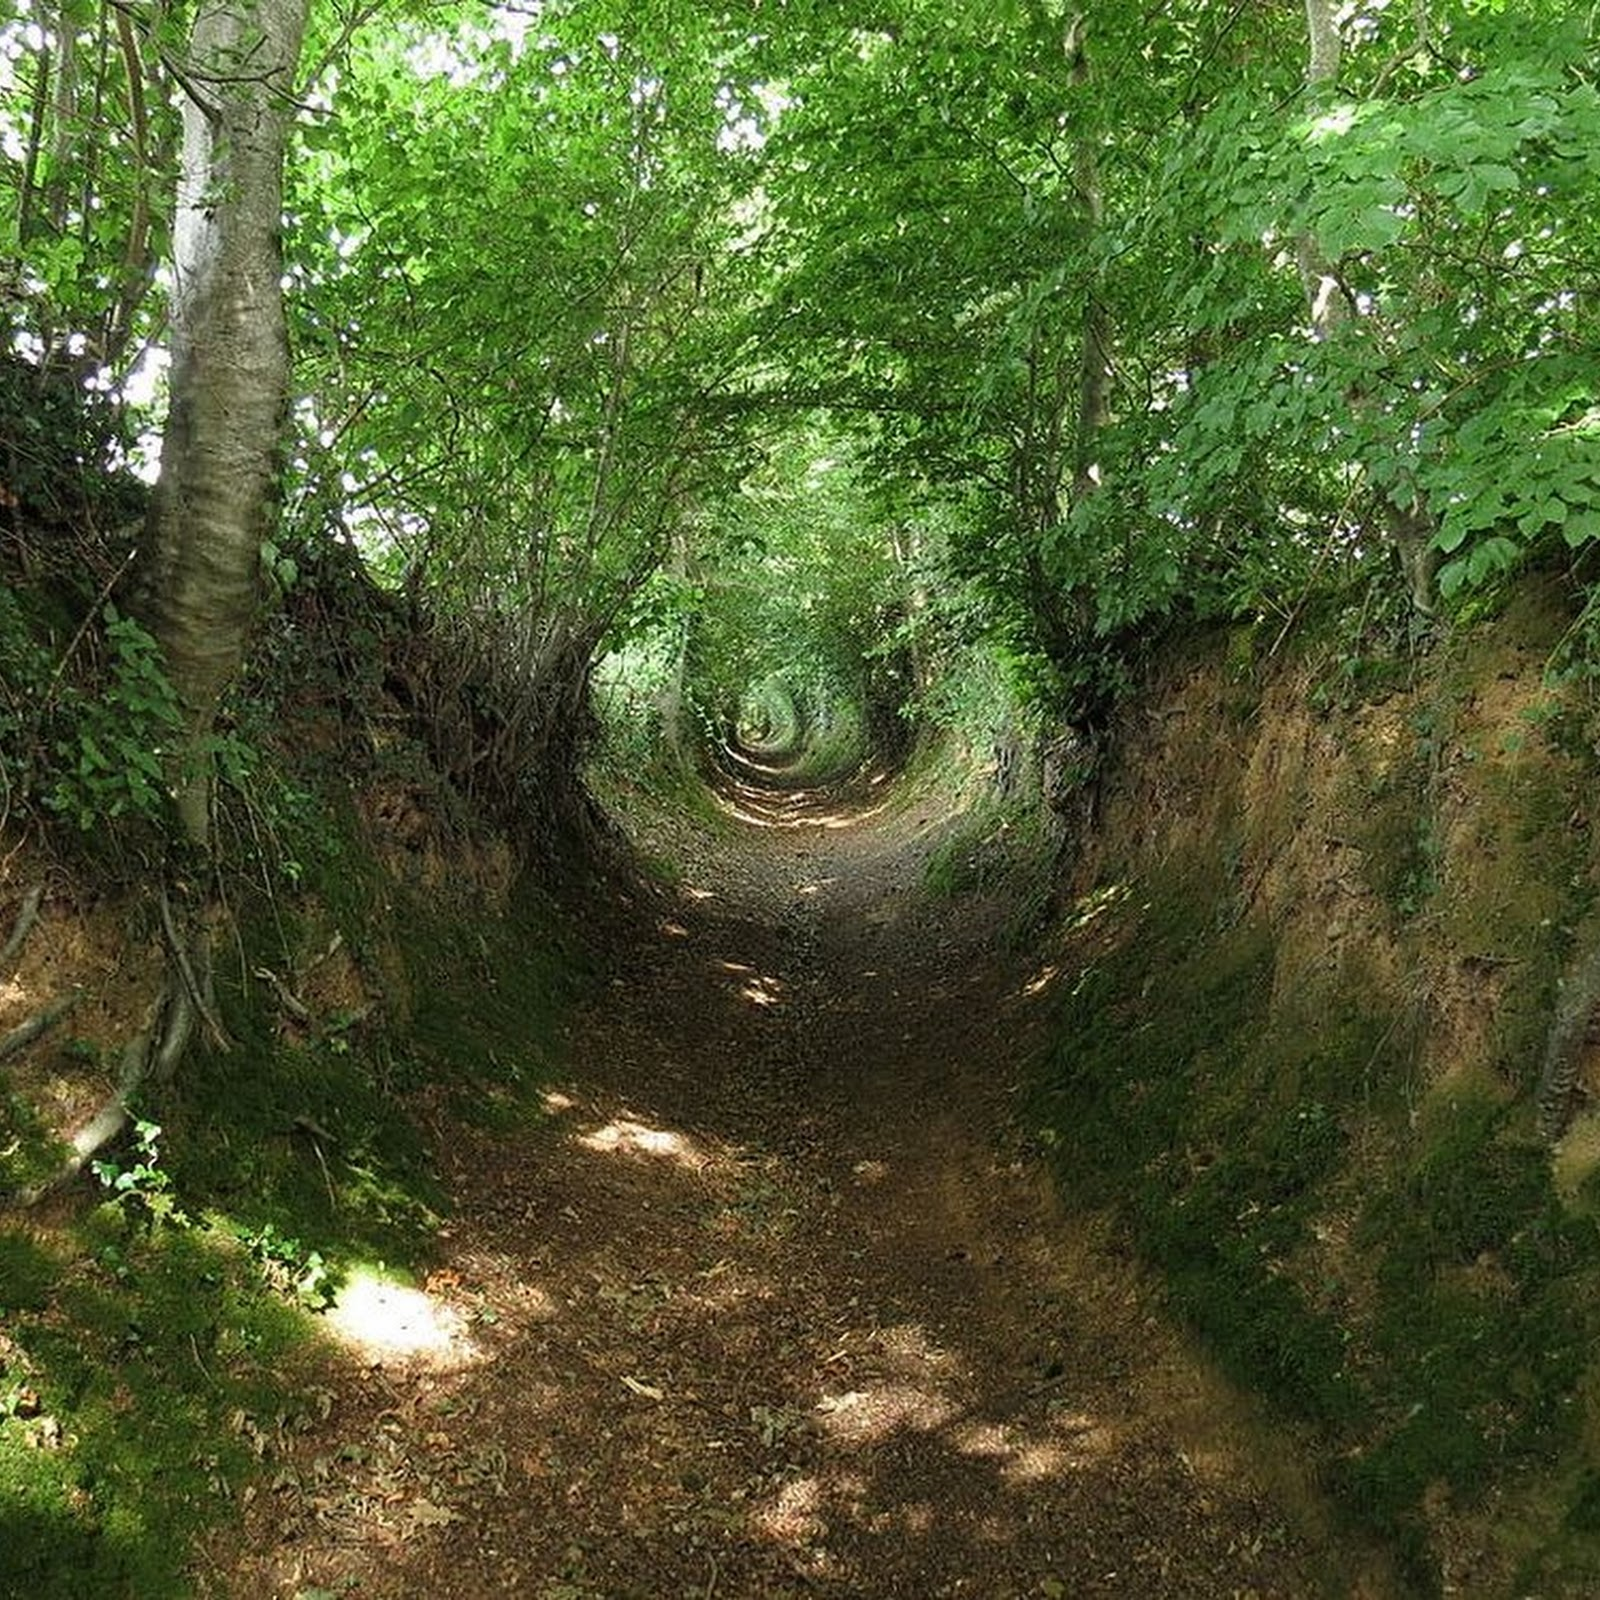 The Sunken Lanes of Europe